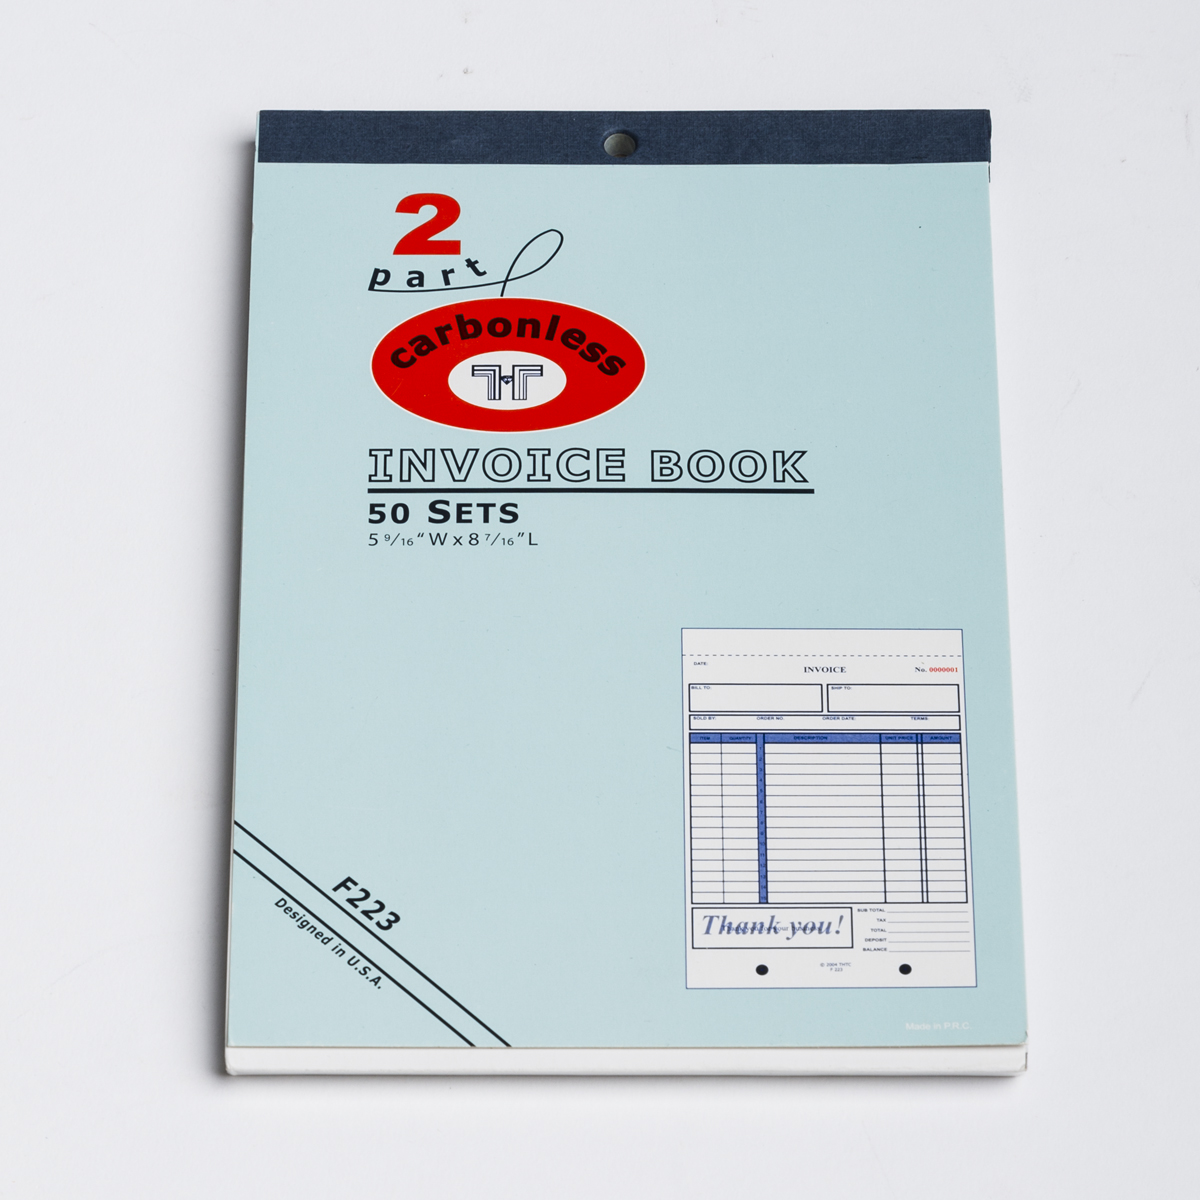 INVOICE BOOK-2 PART CARBONLESS